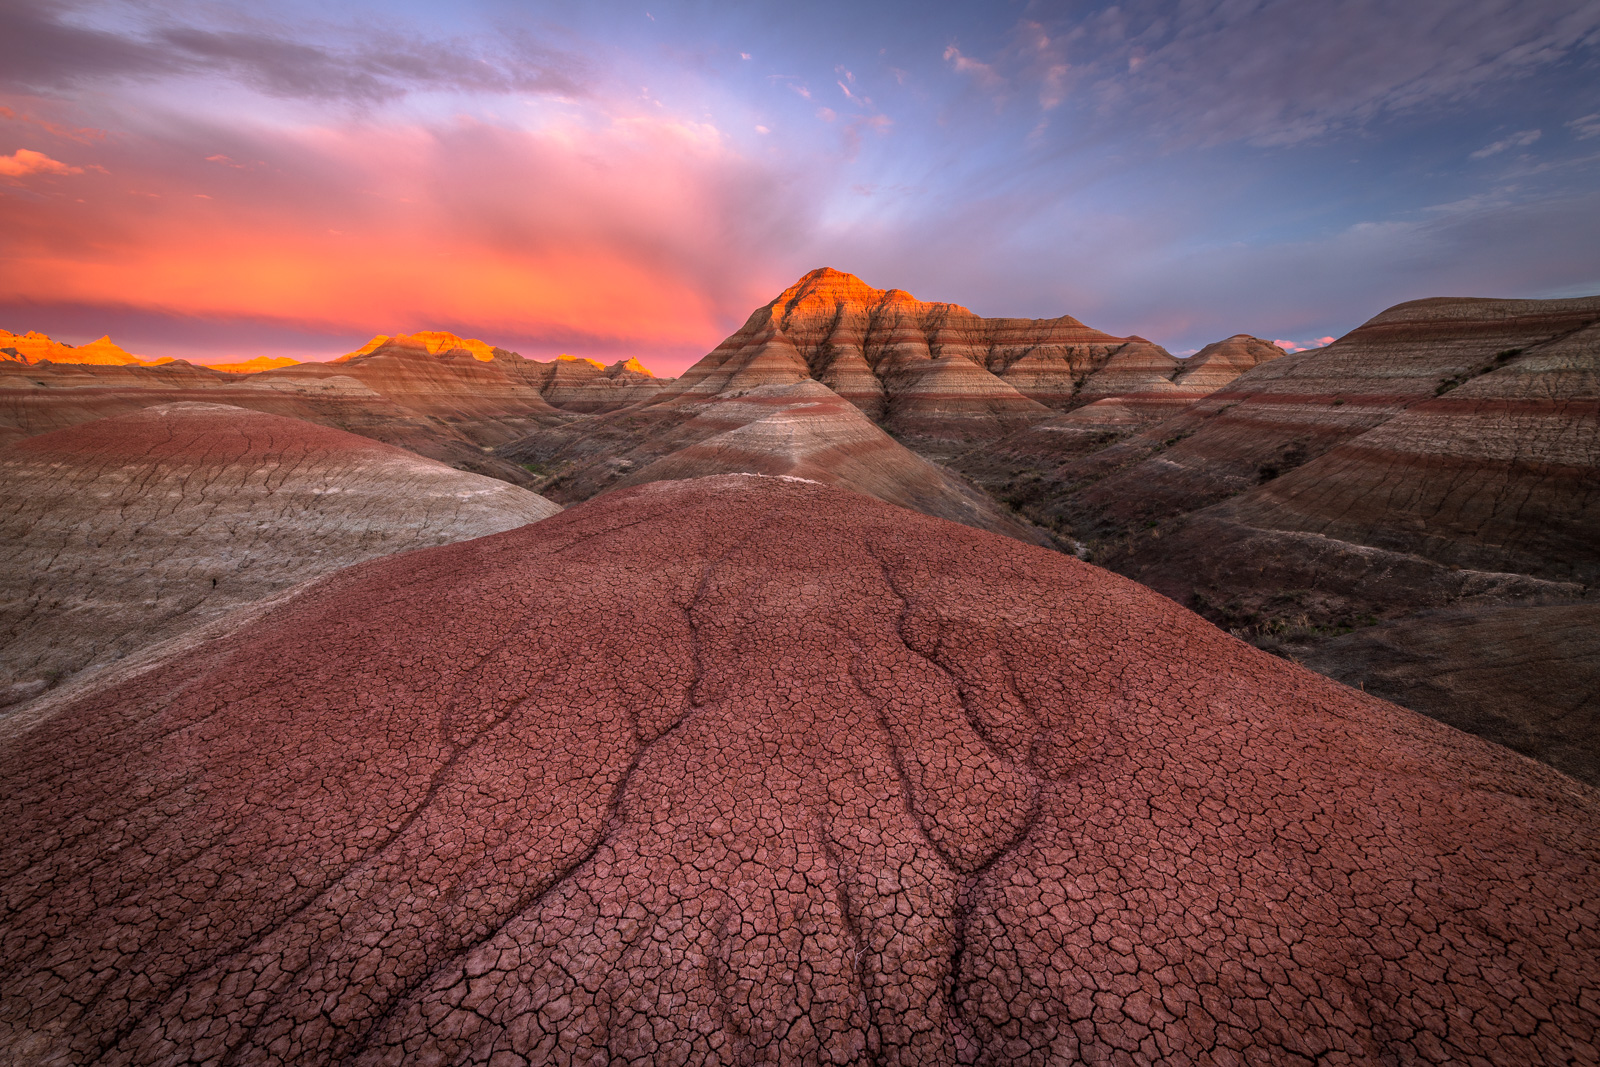 A spectacular sunset over the pyramids and pinnacles of Badlands National Park.